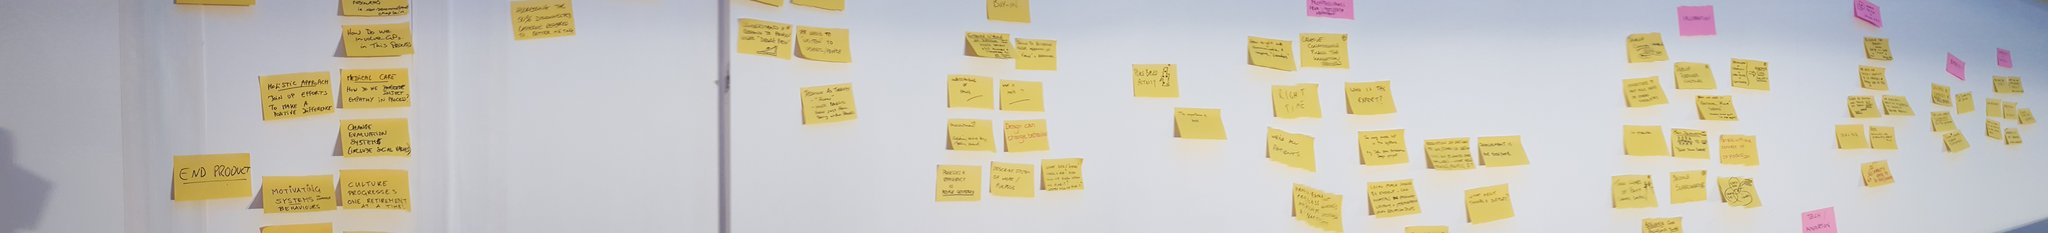 Going away with a whole wall of ideas! Thanks for an excellent day @Creative_Dundee @openchangeuk #creatingcare #realisticmedicine https://t.co/sdAwvLuWt1